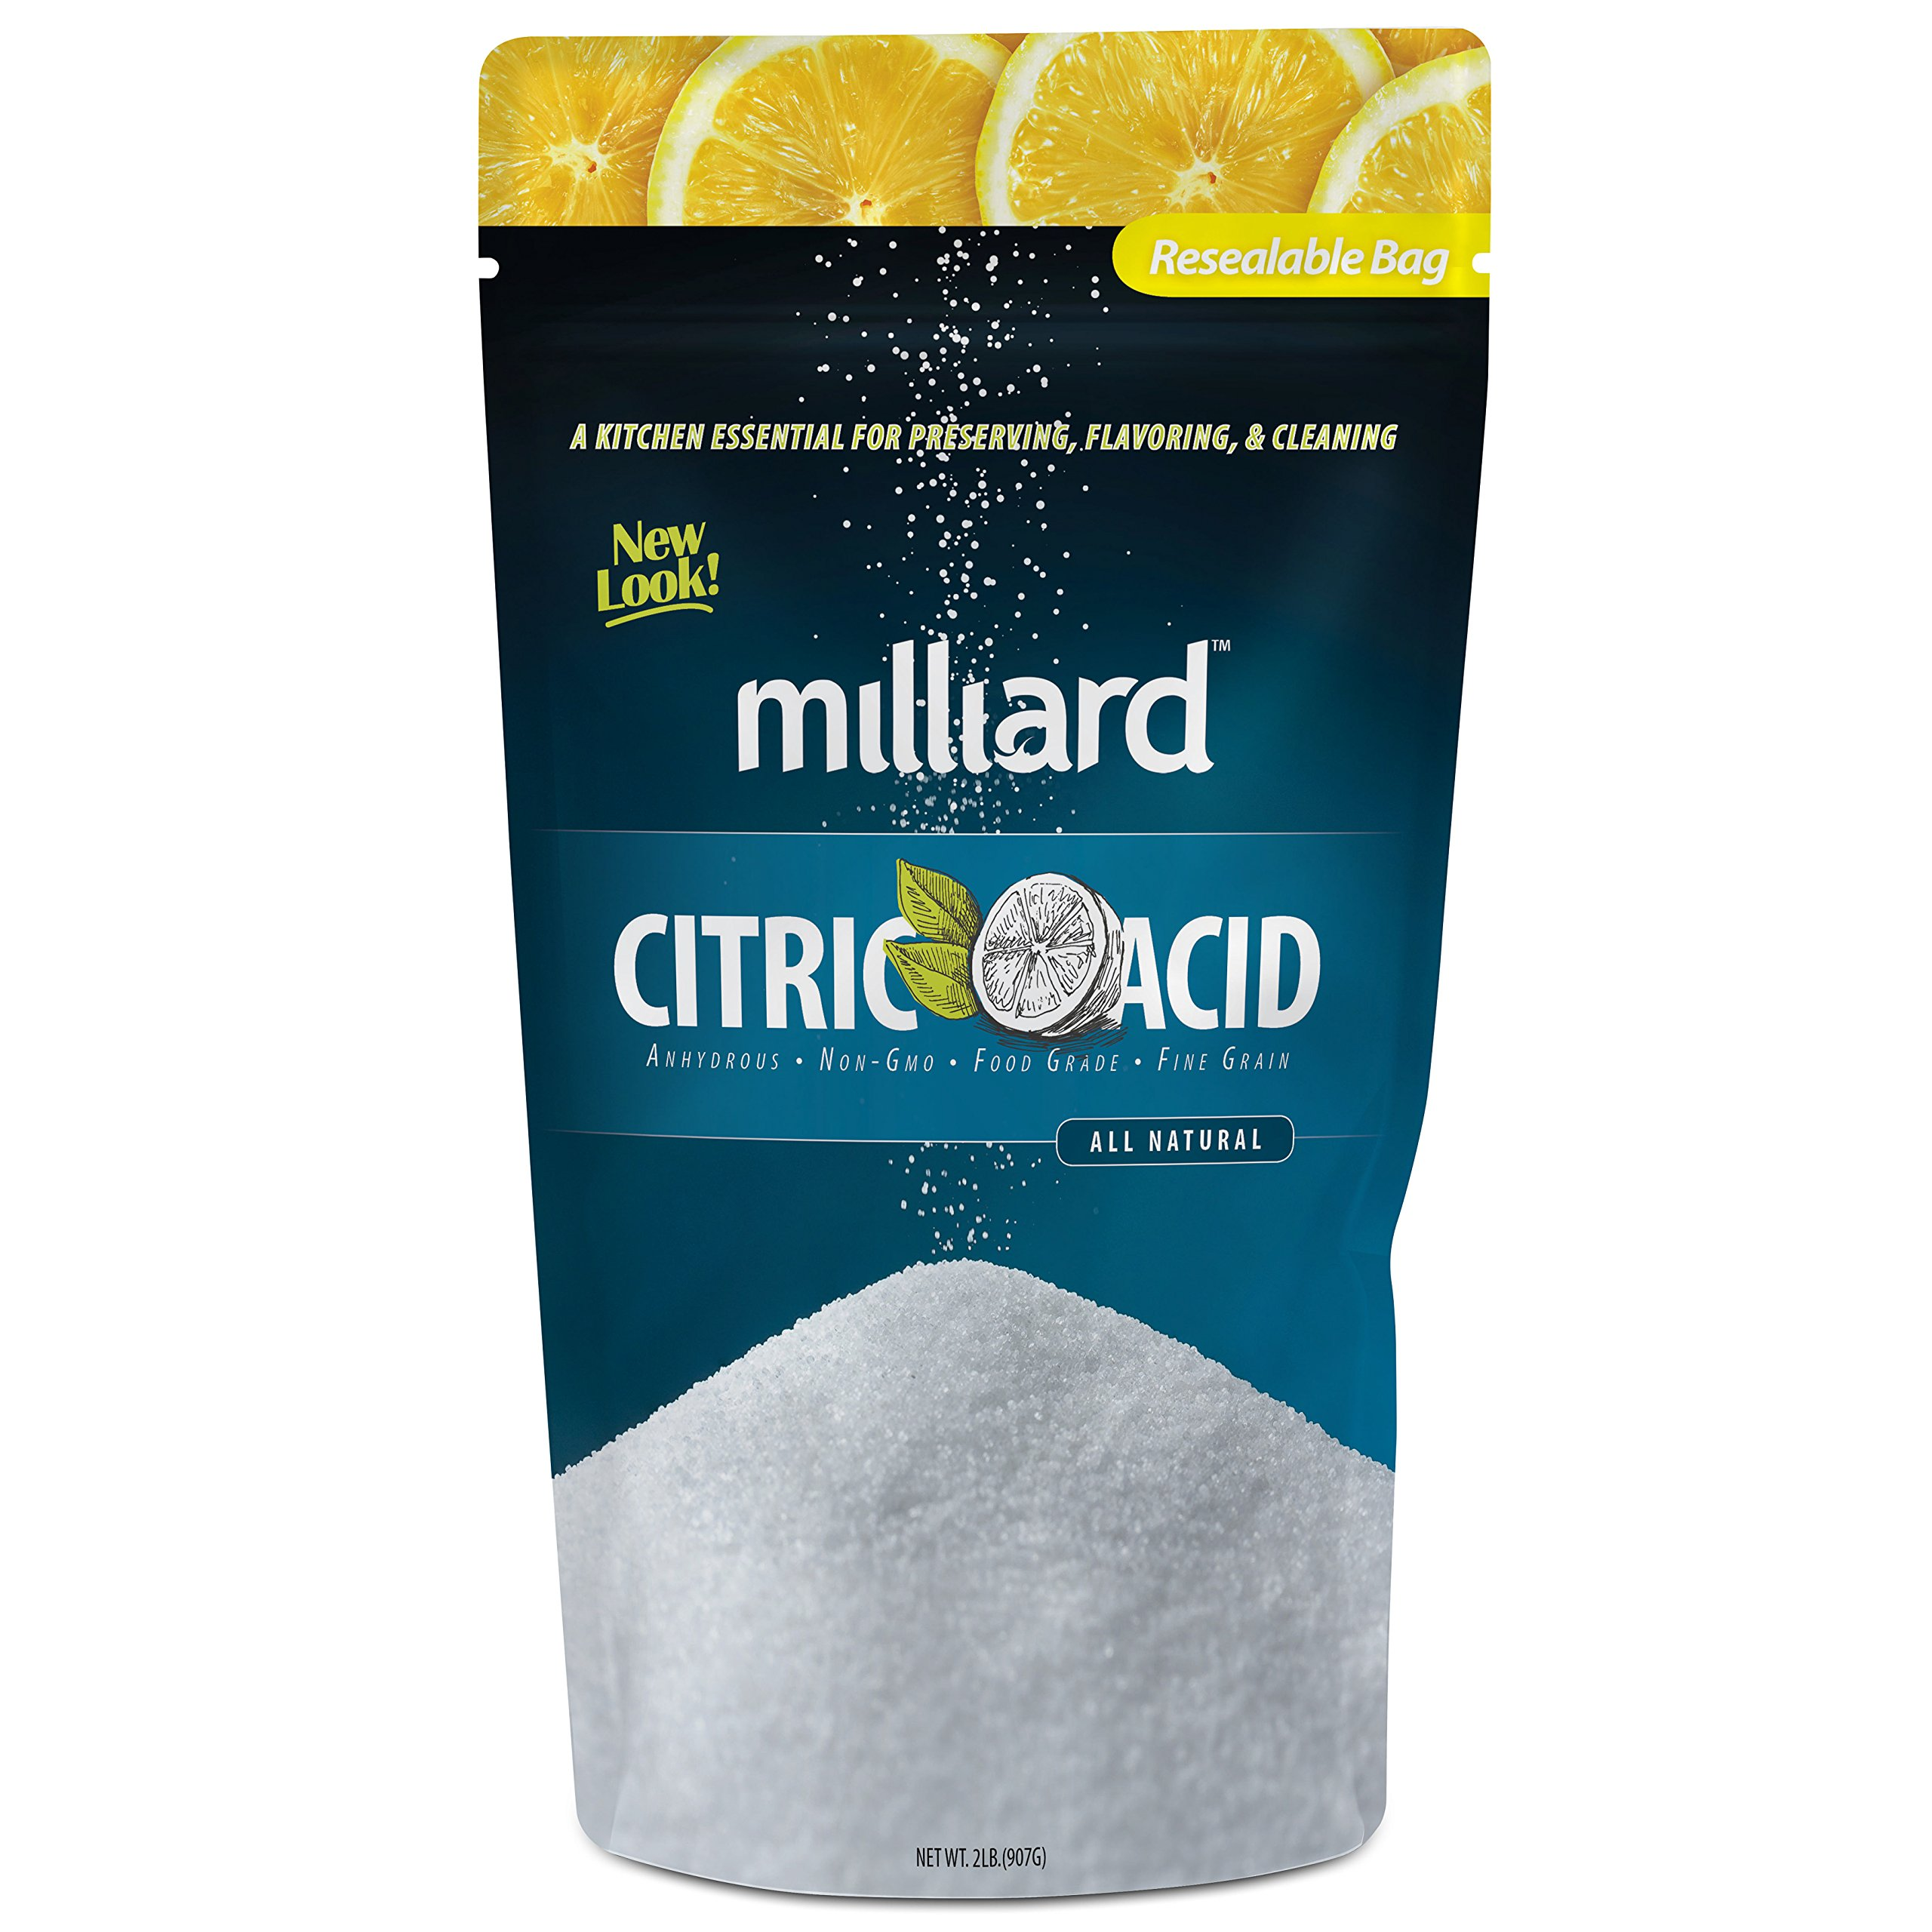 Milliard Citric Acid - 2 Pound - 100% Pure Food Grade NON-GMO (2 Pound)